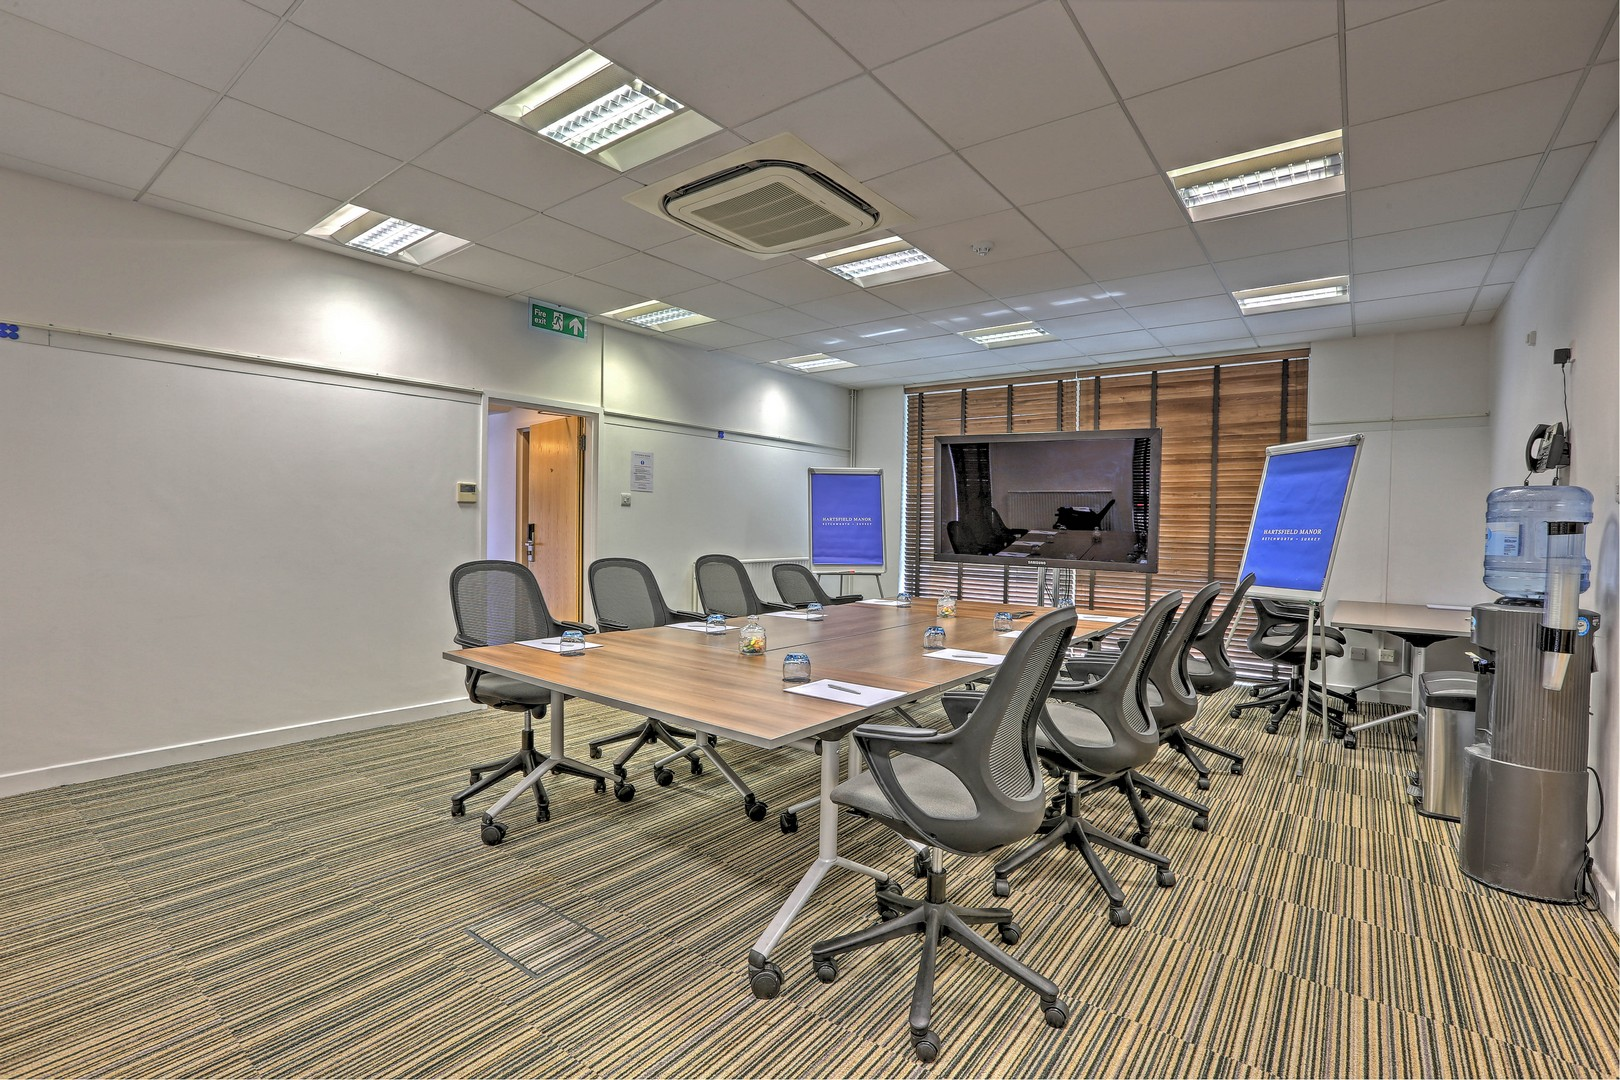 Conference Room, Hartsfield Manor Hotel